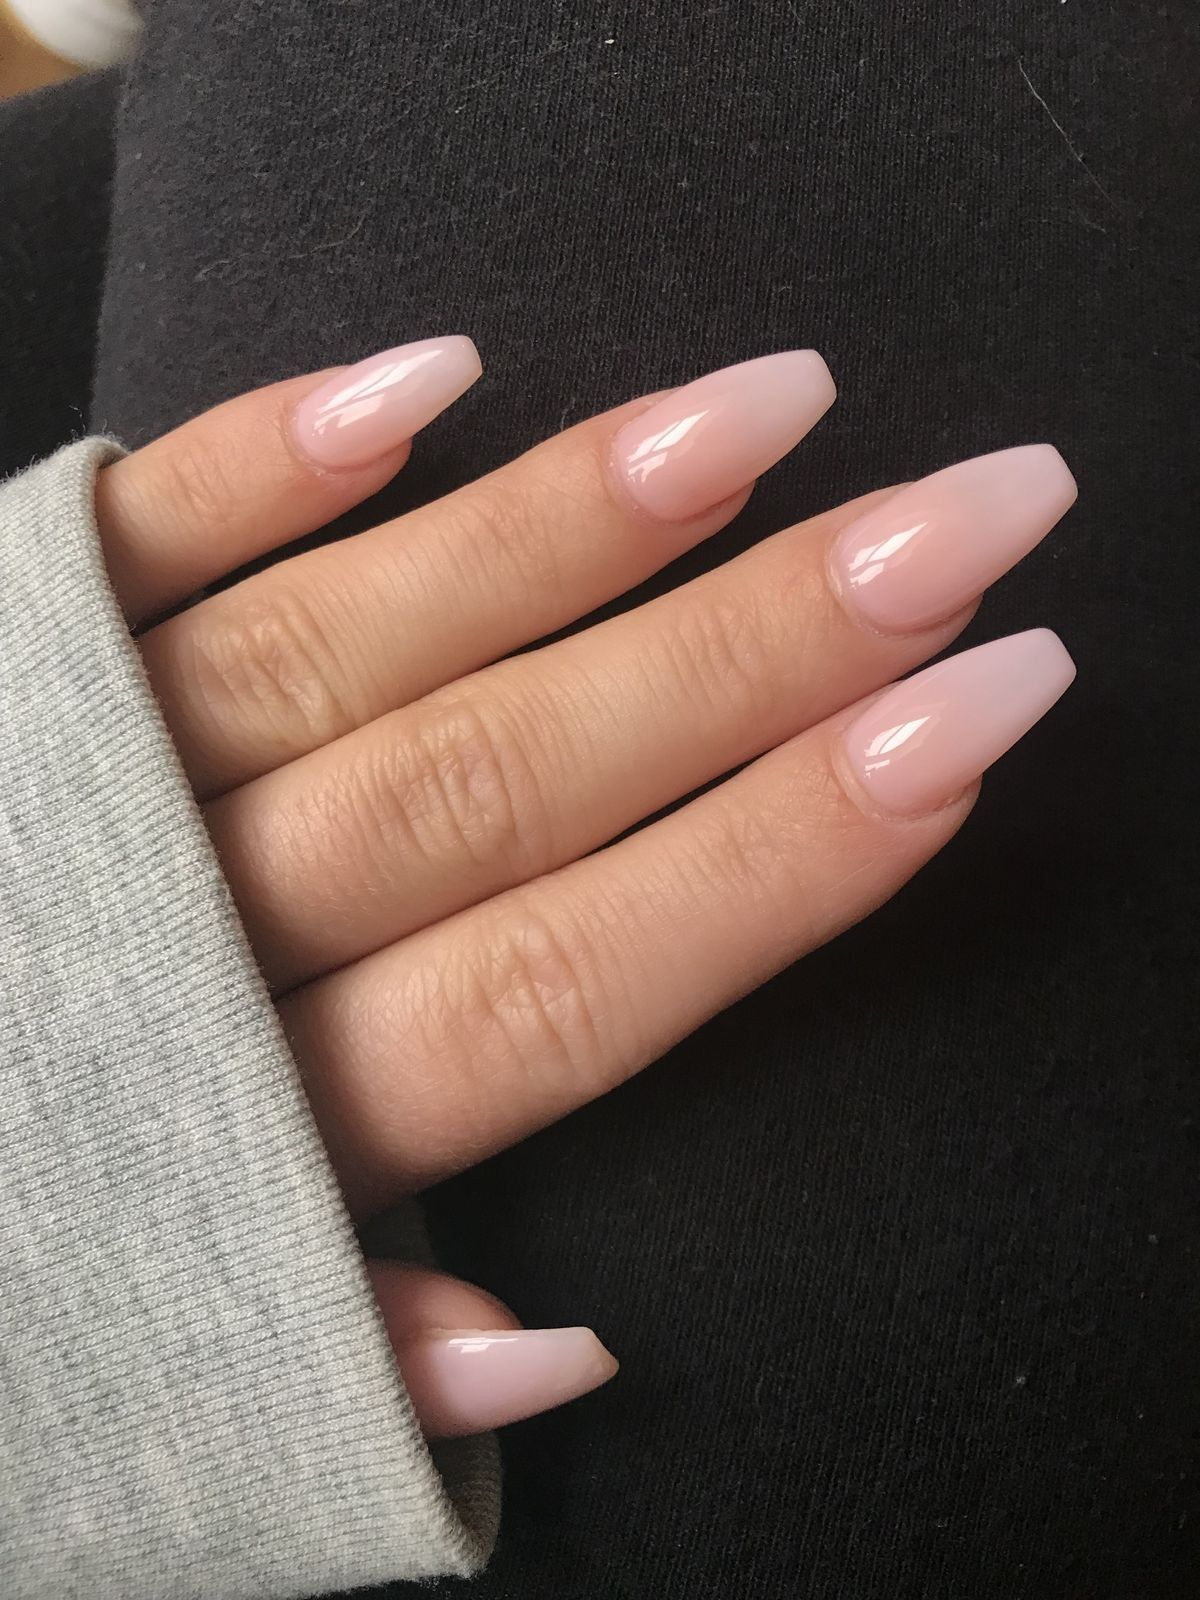 Diy Acrylic Nails Would Look Great In Both A Almond Or Coffin Shape Cute Design For Summer Long Kyl Coffin Nails Long Short Coffin Nails Coffin Nails Designs